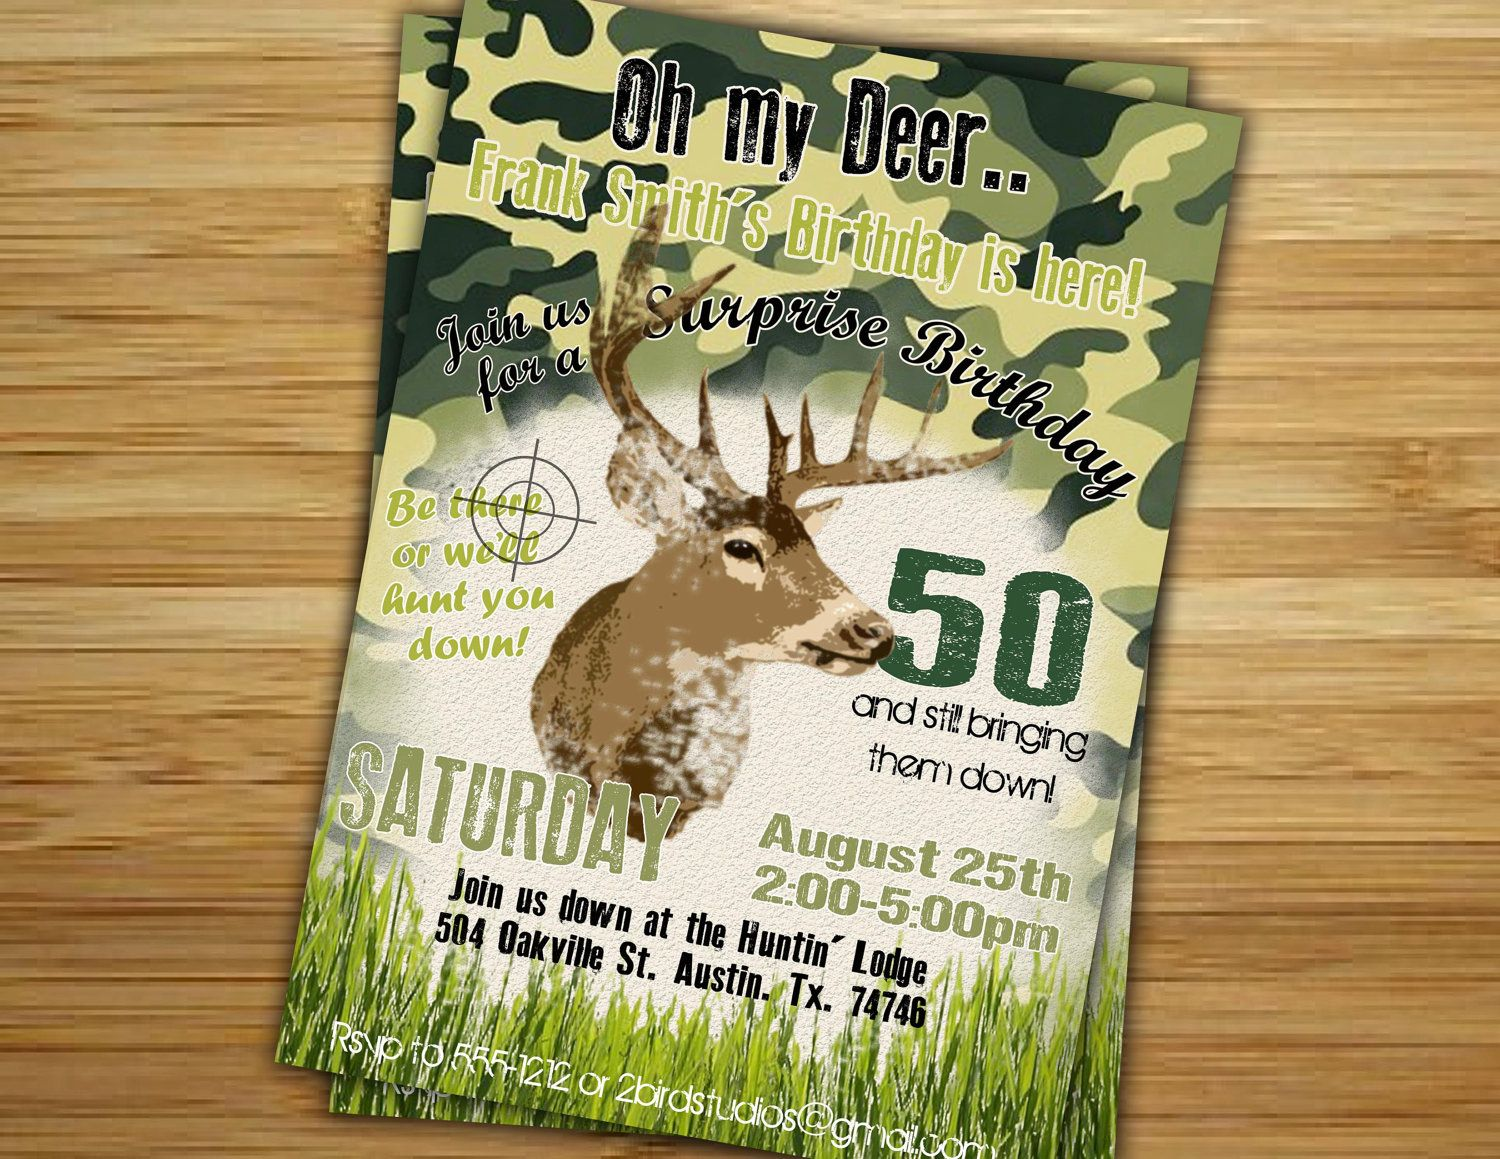 50th birthday party invitations - Google Search | Cool stuff ...